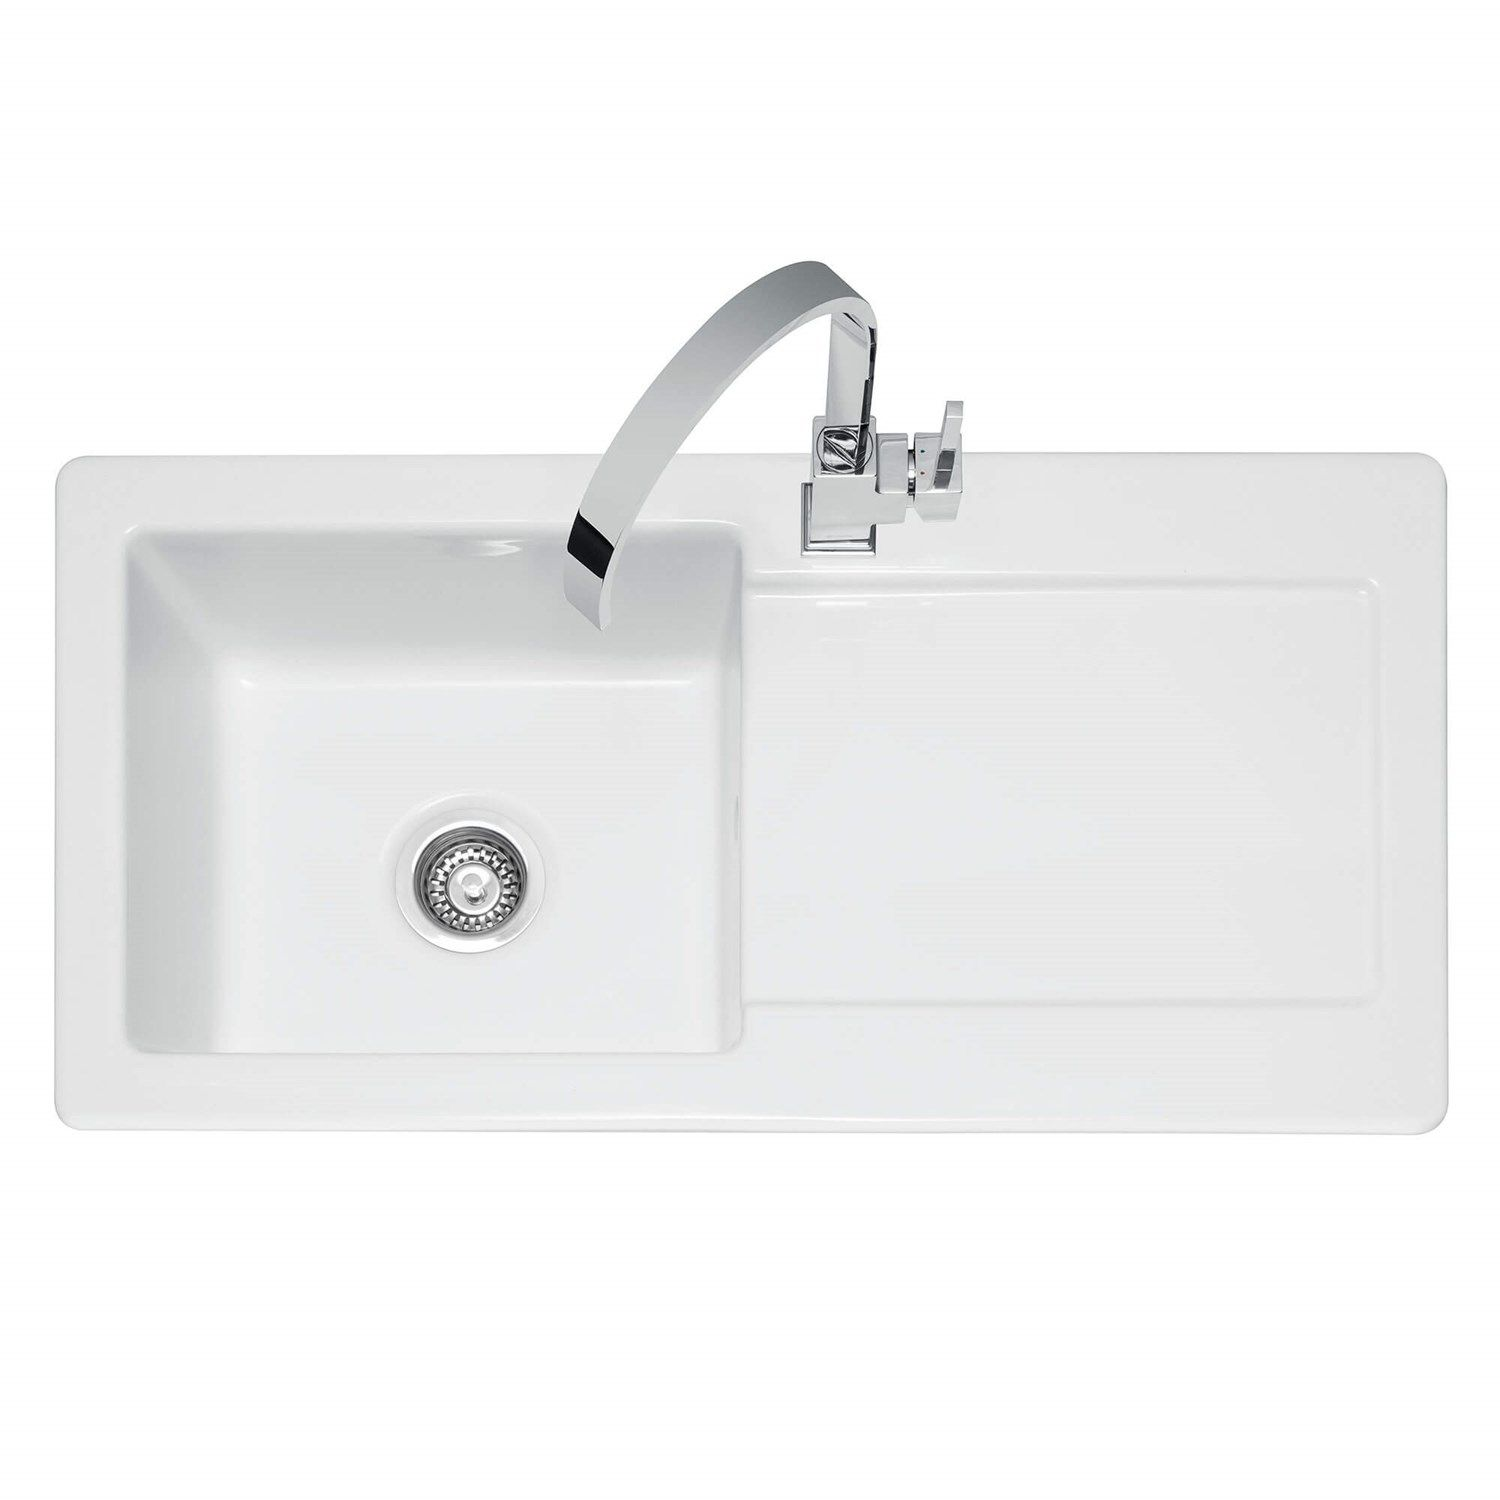 Caple Foxboro 1 Bowl White Ceramic Kitchen Sink With Reversible Drainer 1000 X 500mm White Ceramic Kitchen Sink Sink Ceramic Kitchen Sinks